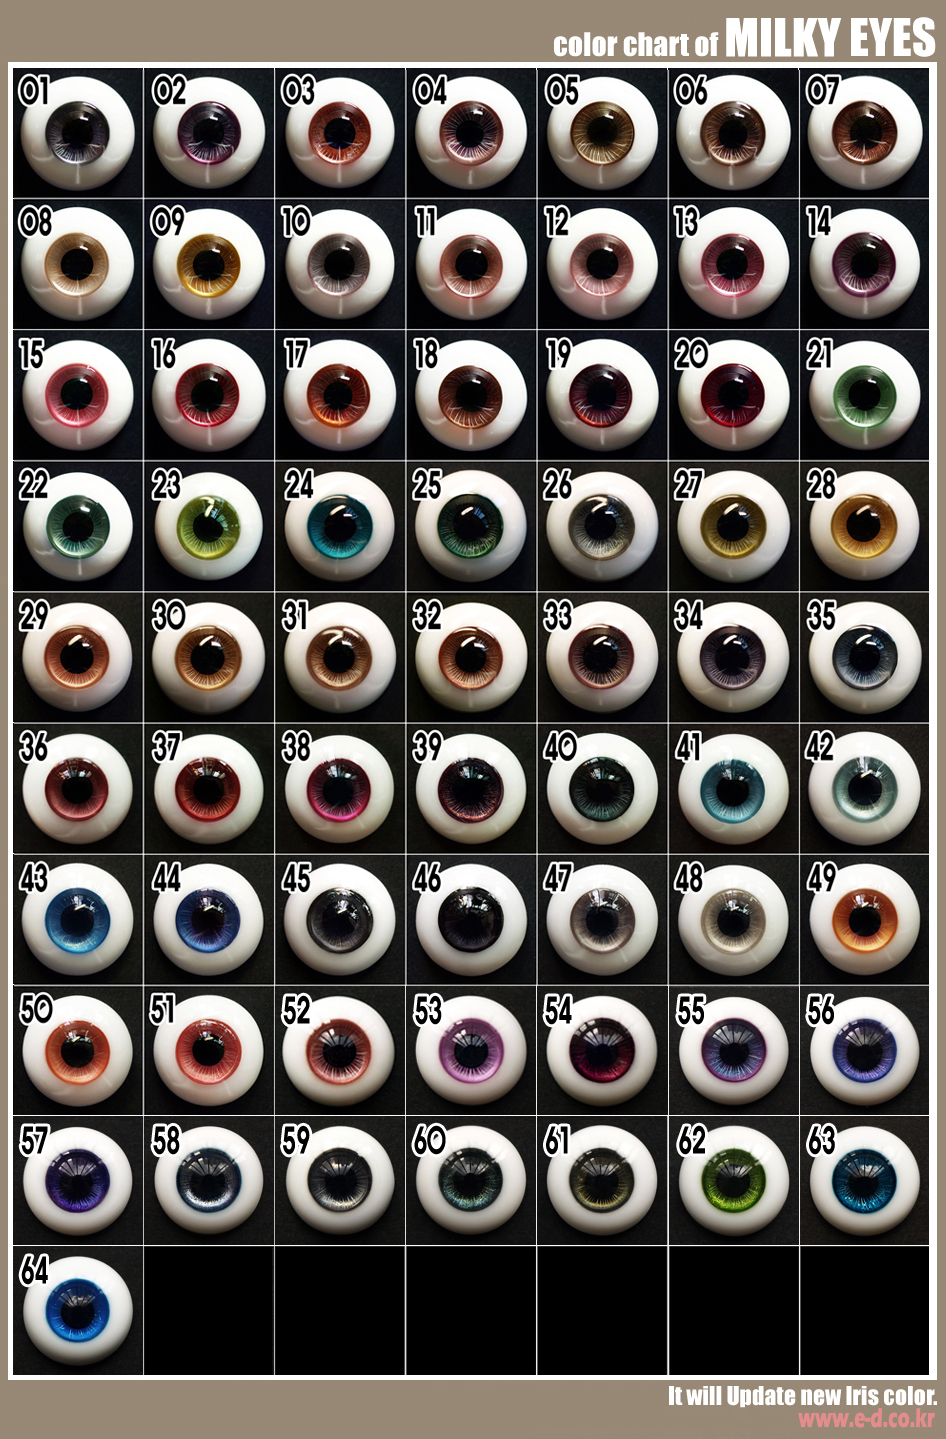 What's Your Eye Color? -- New Color Chart! - Community | The